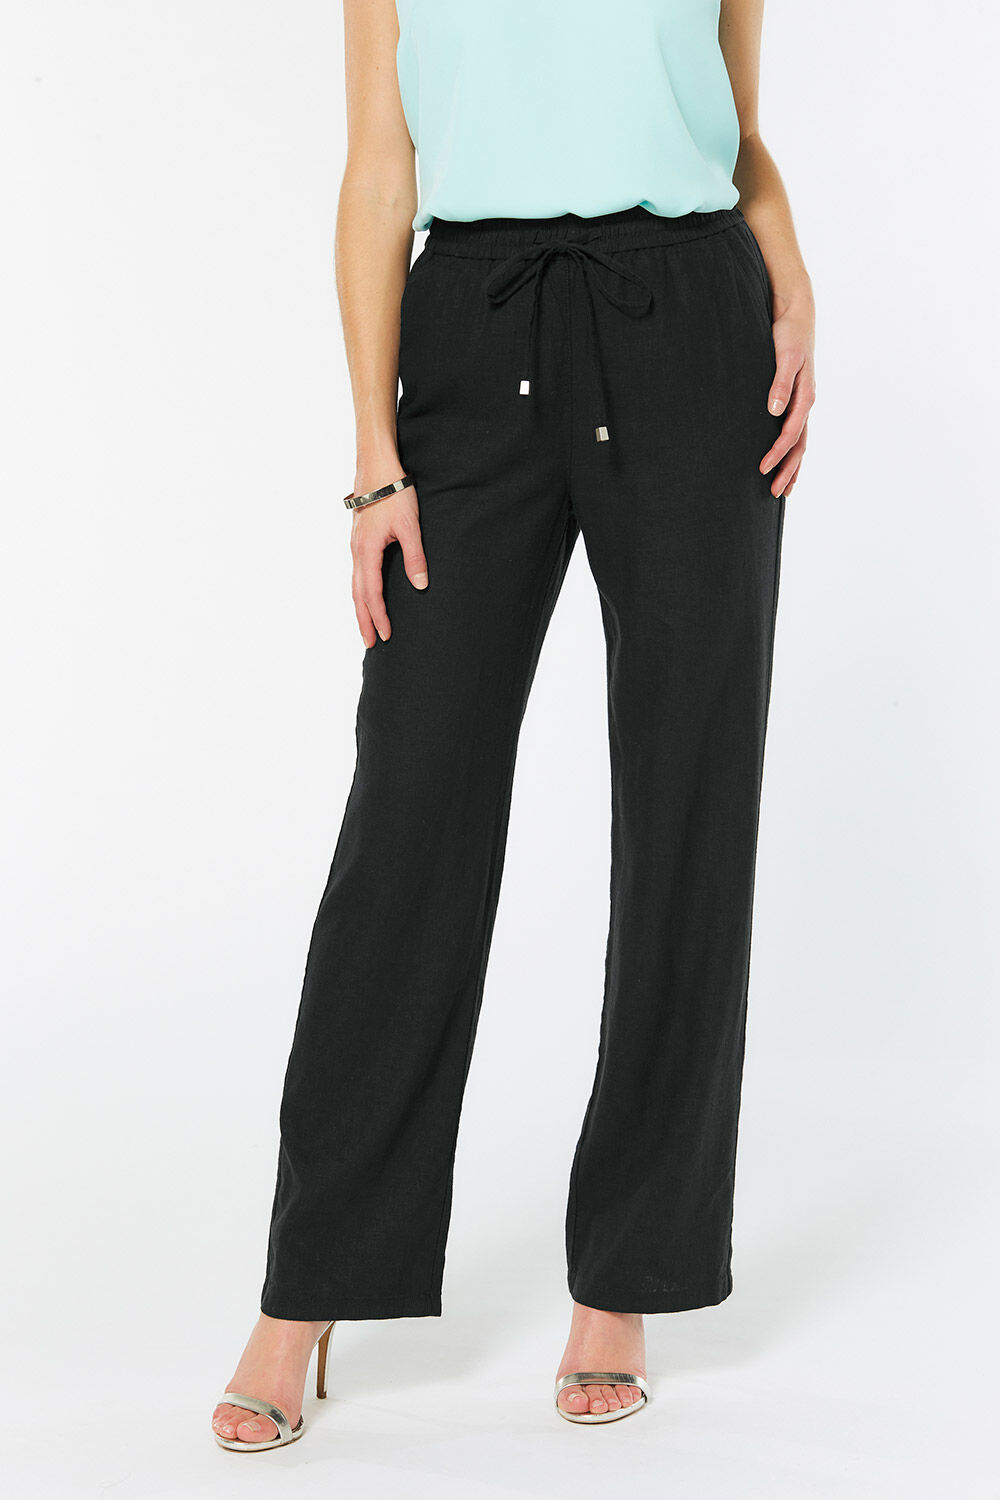 Hosen Damenmode M&s Collection Womens Trousers Navy Pin Striped Wide Leg Cropped Size 8 New